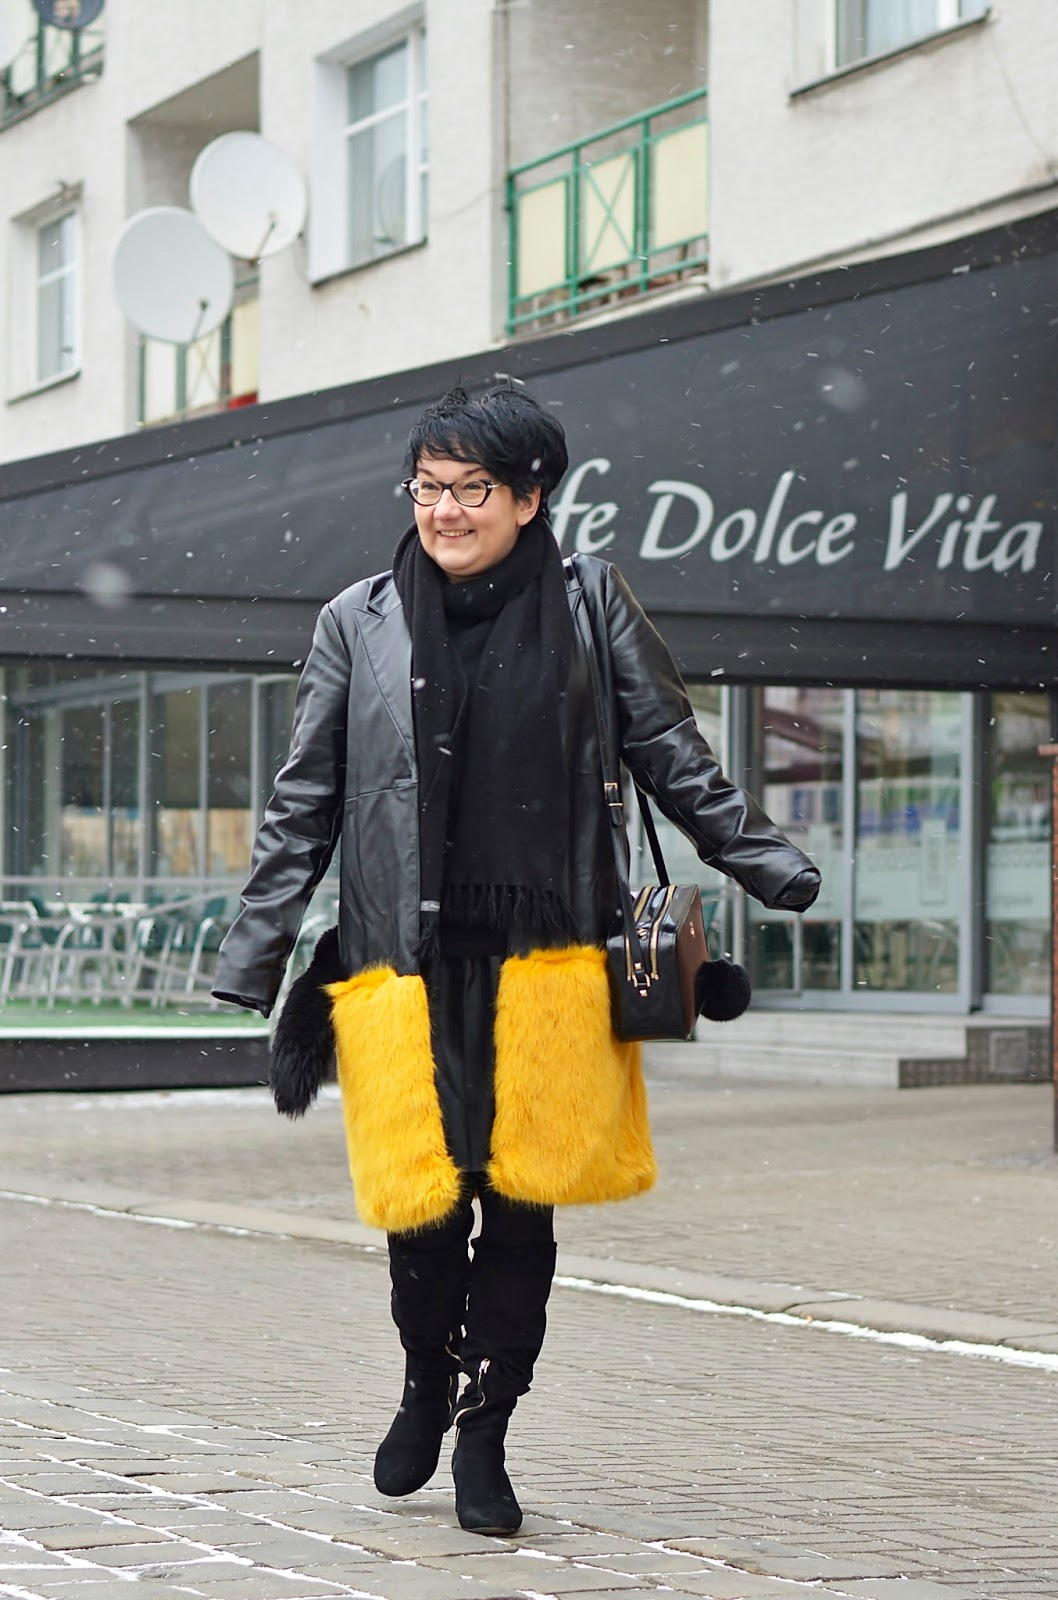 Yello fur, Zara coat, Patrizia Pepe bag